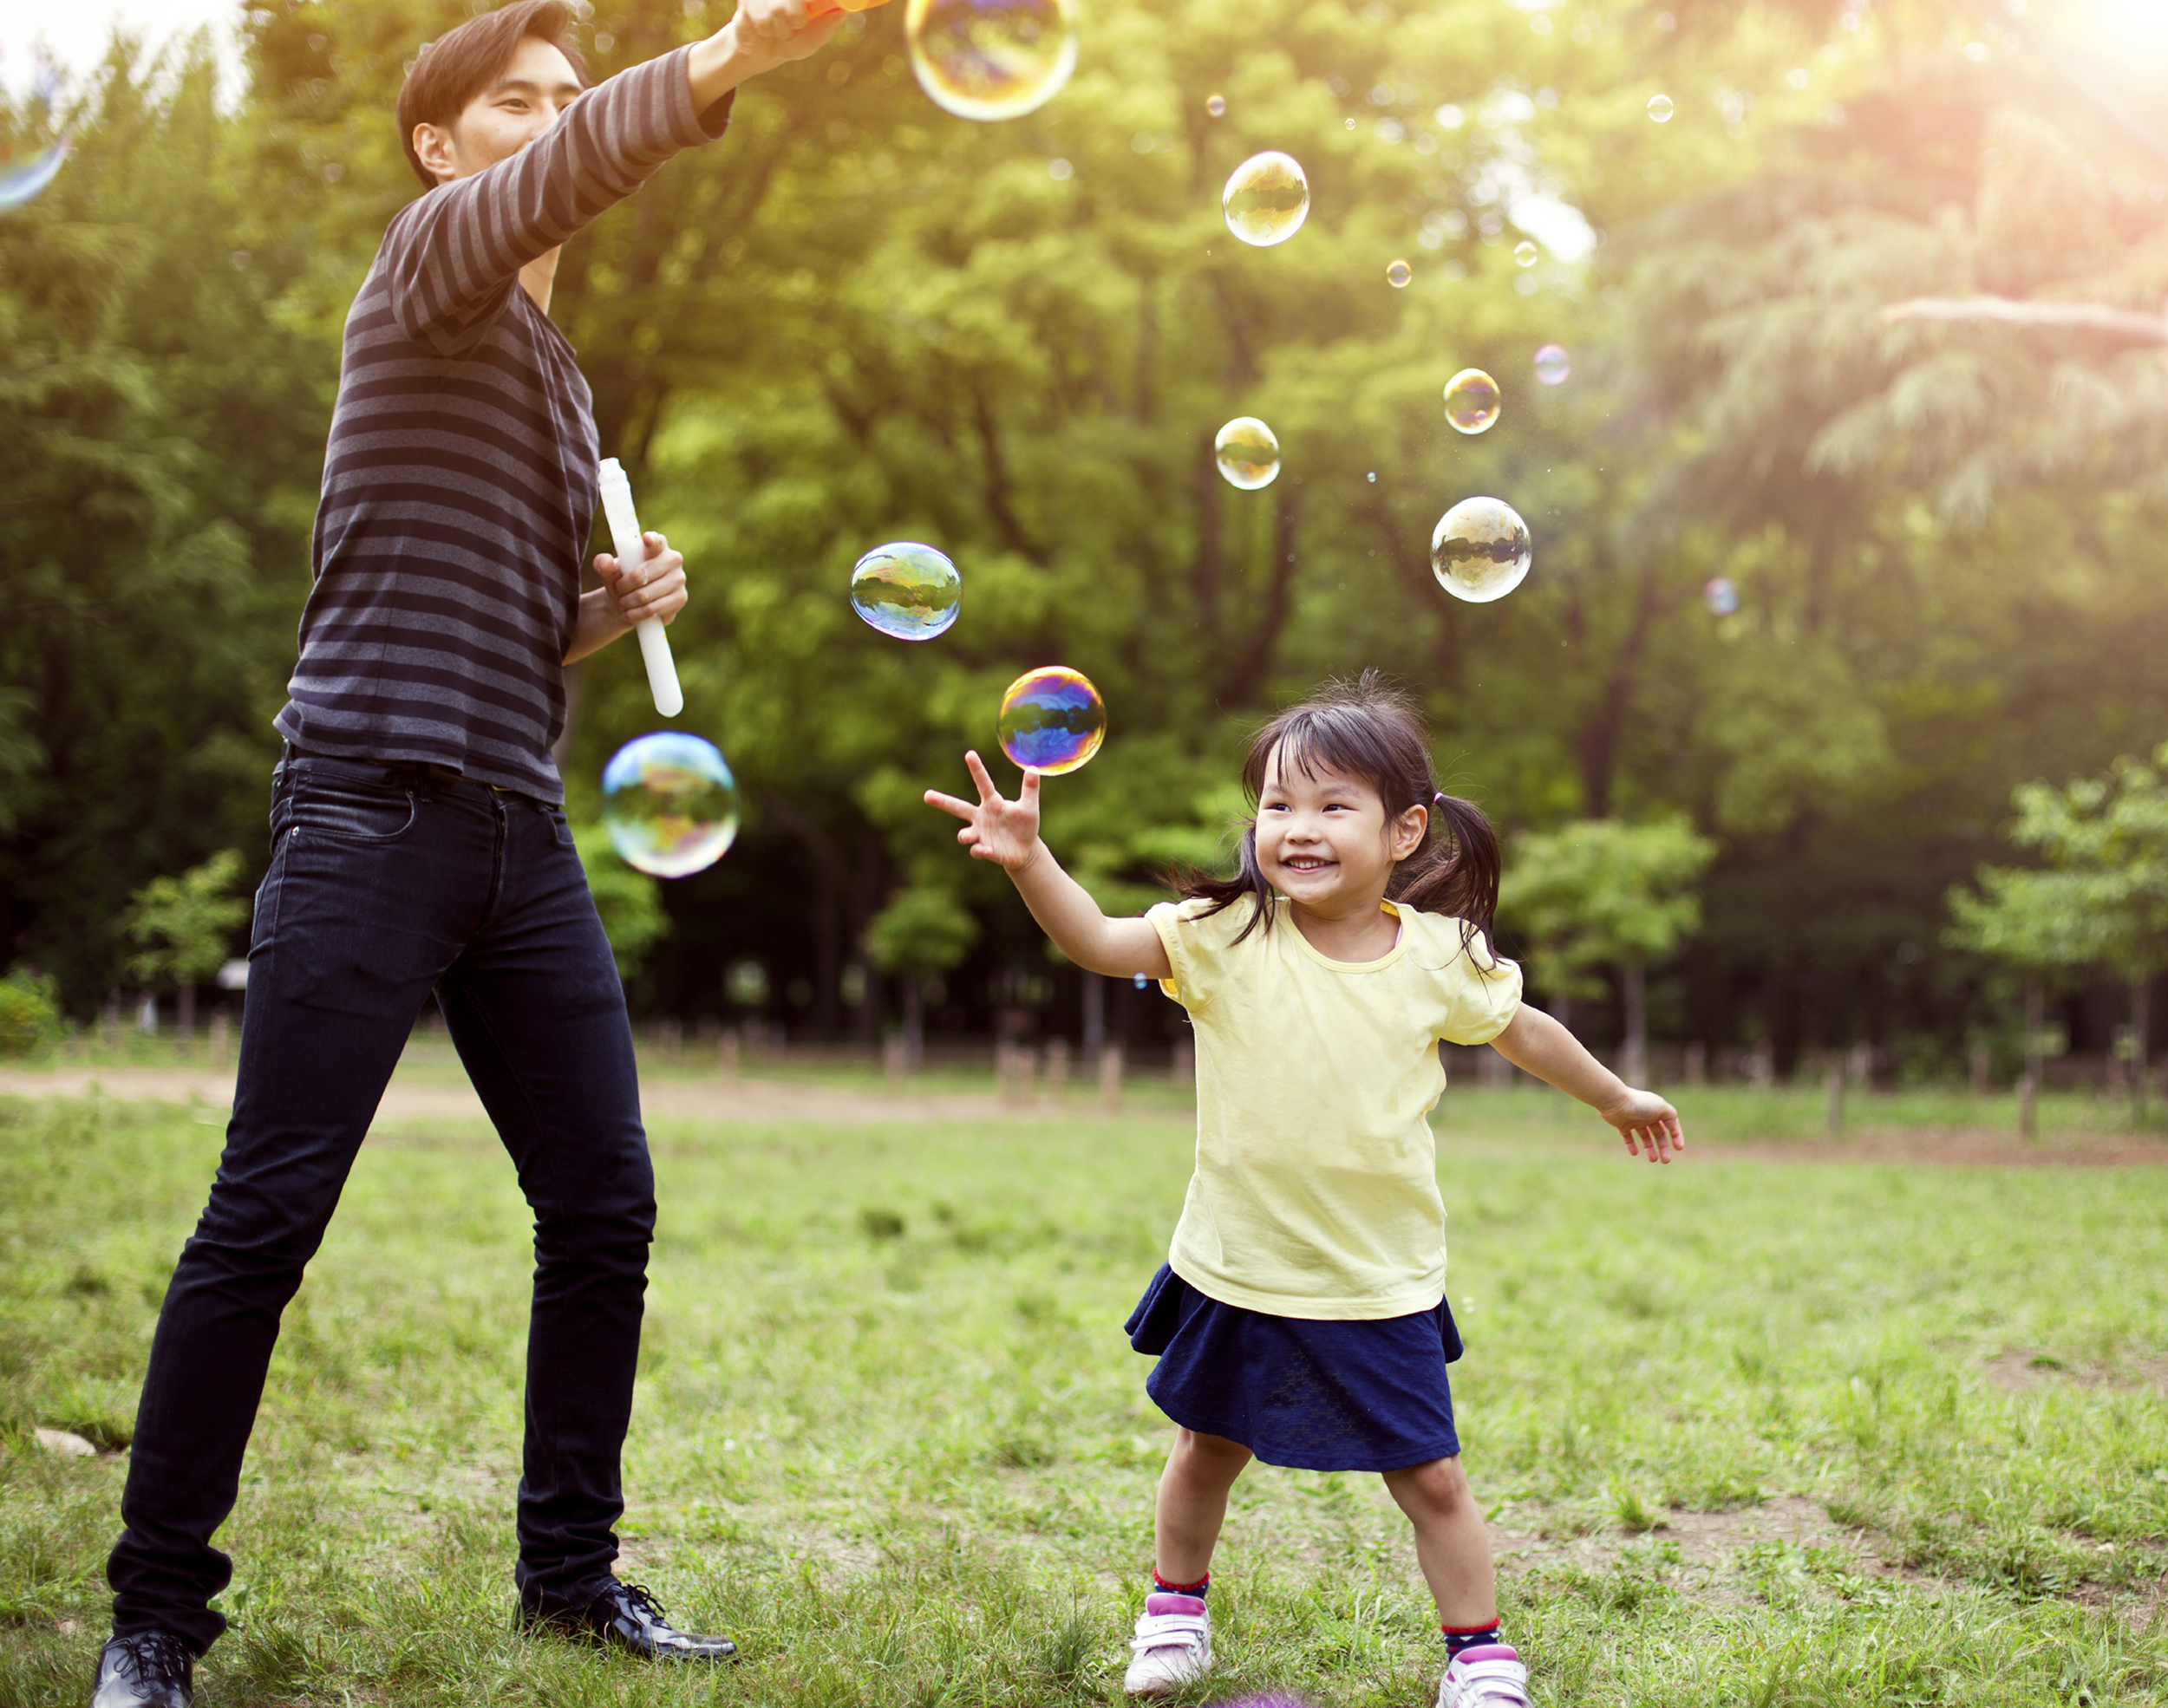 Man playing with bubble with little girl